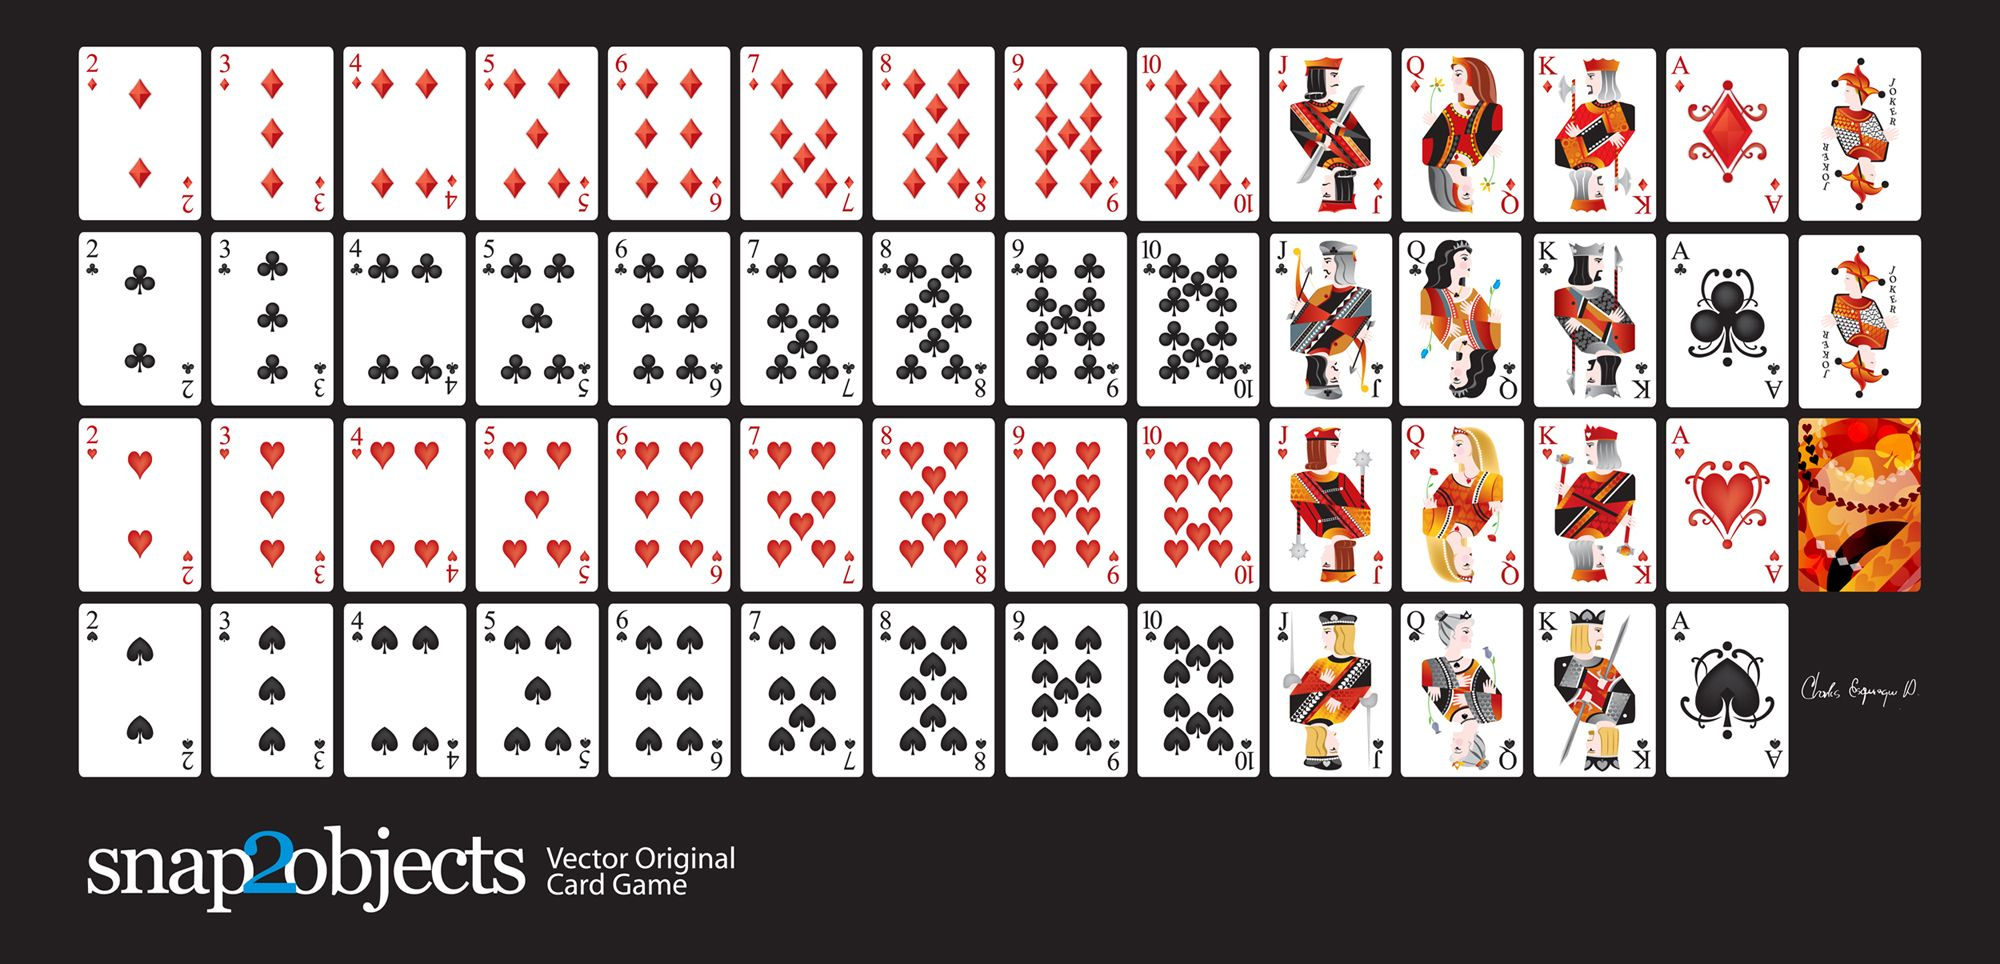 Free-Vector-Card-Deck   Silhouette Cameo   Pinterest   Printable - Free Printable Deck Of Cards